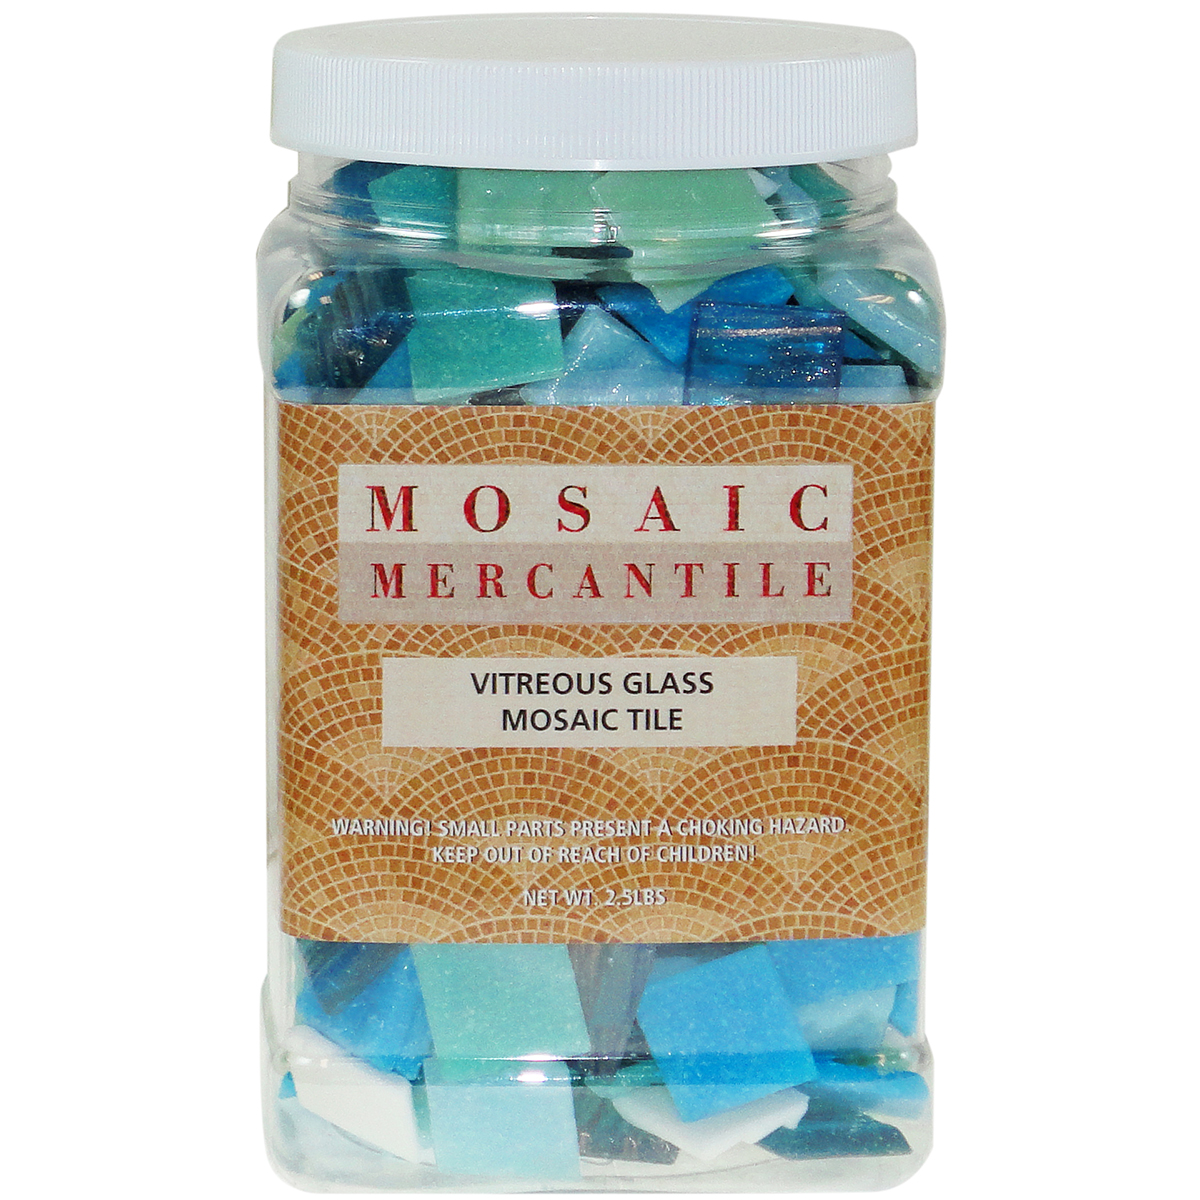 Mosaic Mercantile Vitreous Glass Mosaic Tile Horizon Mix